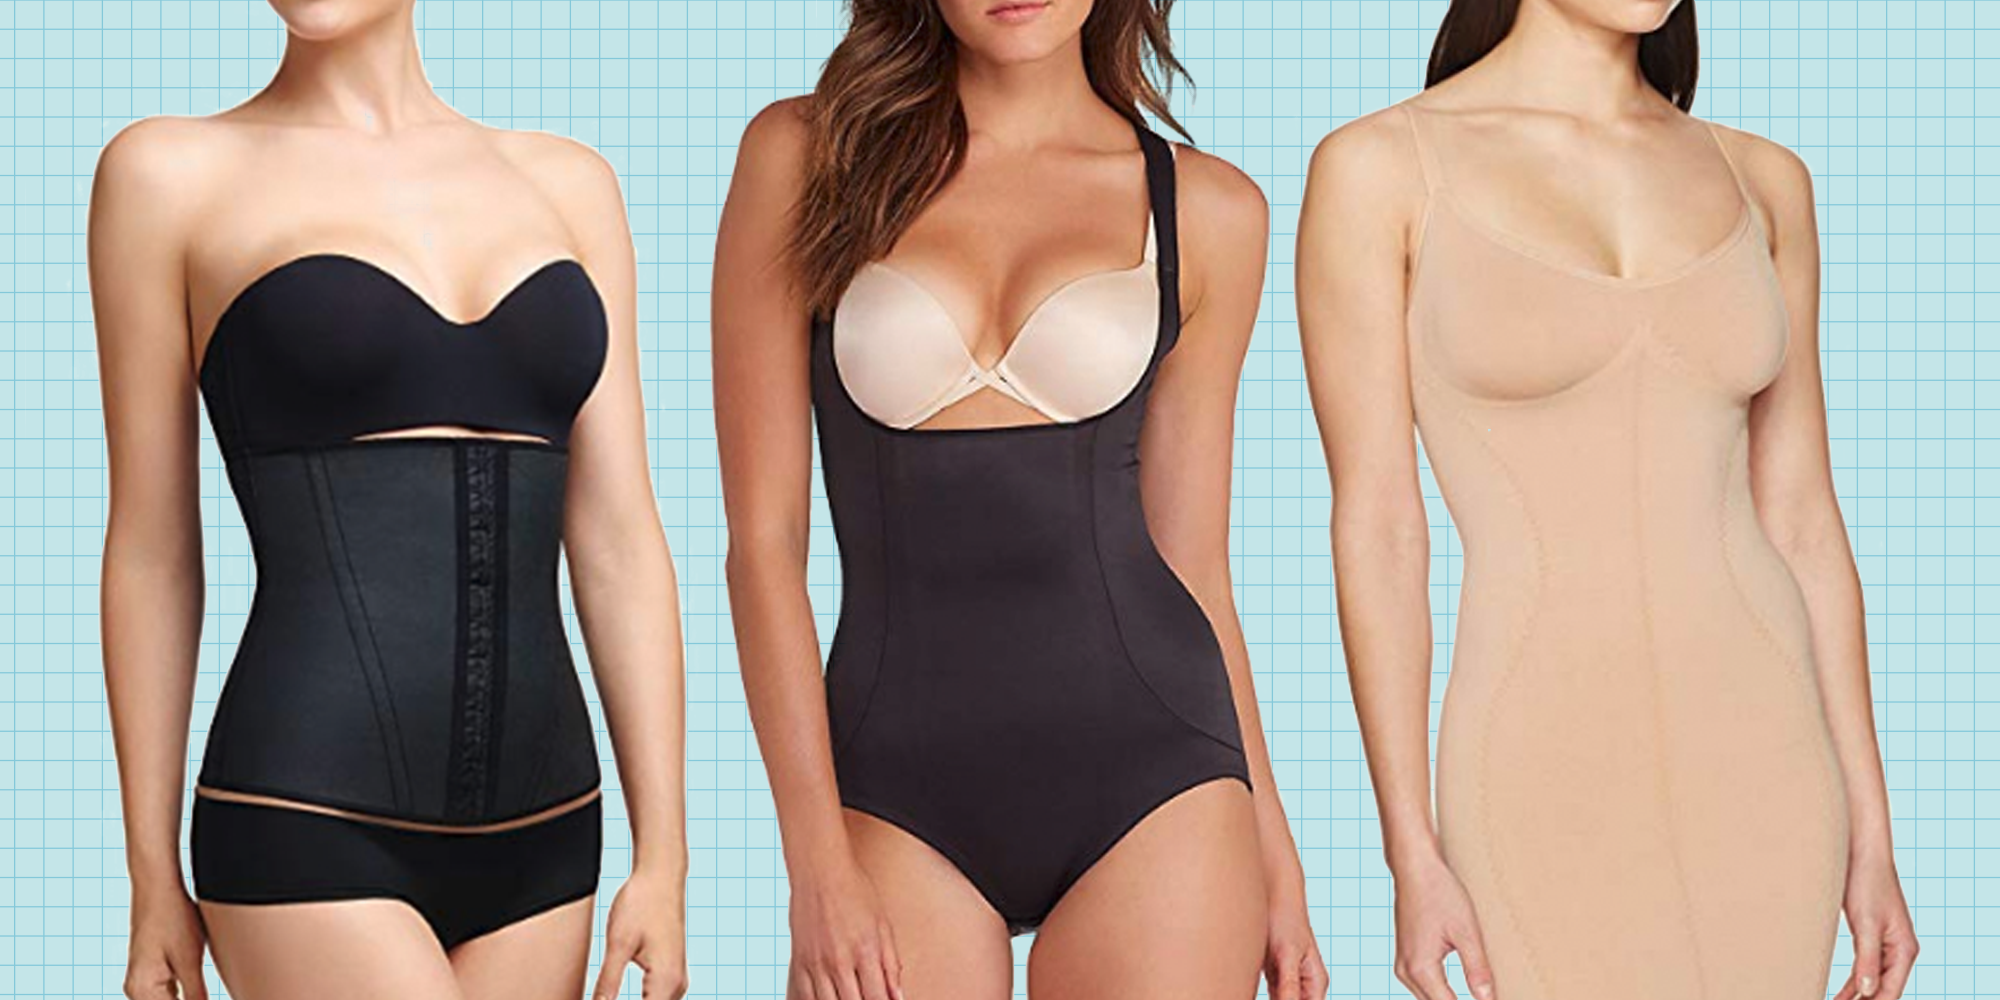 39640e0b73 Best Shapewear Solutions for Women 2019 - Best Shapewear Solutions ...